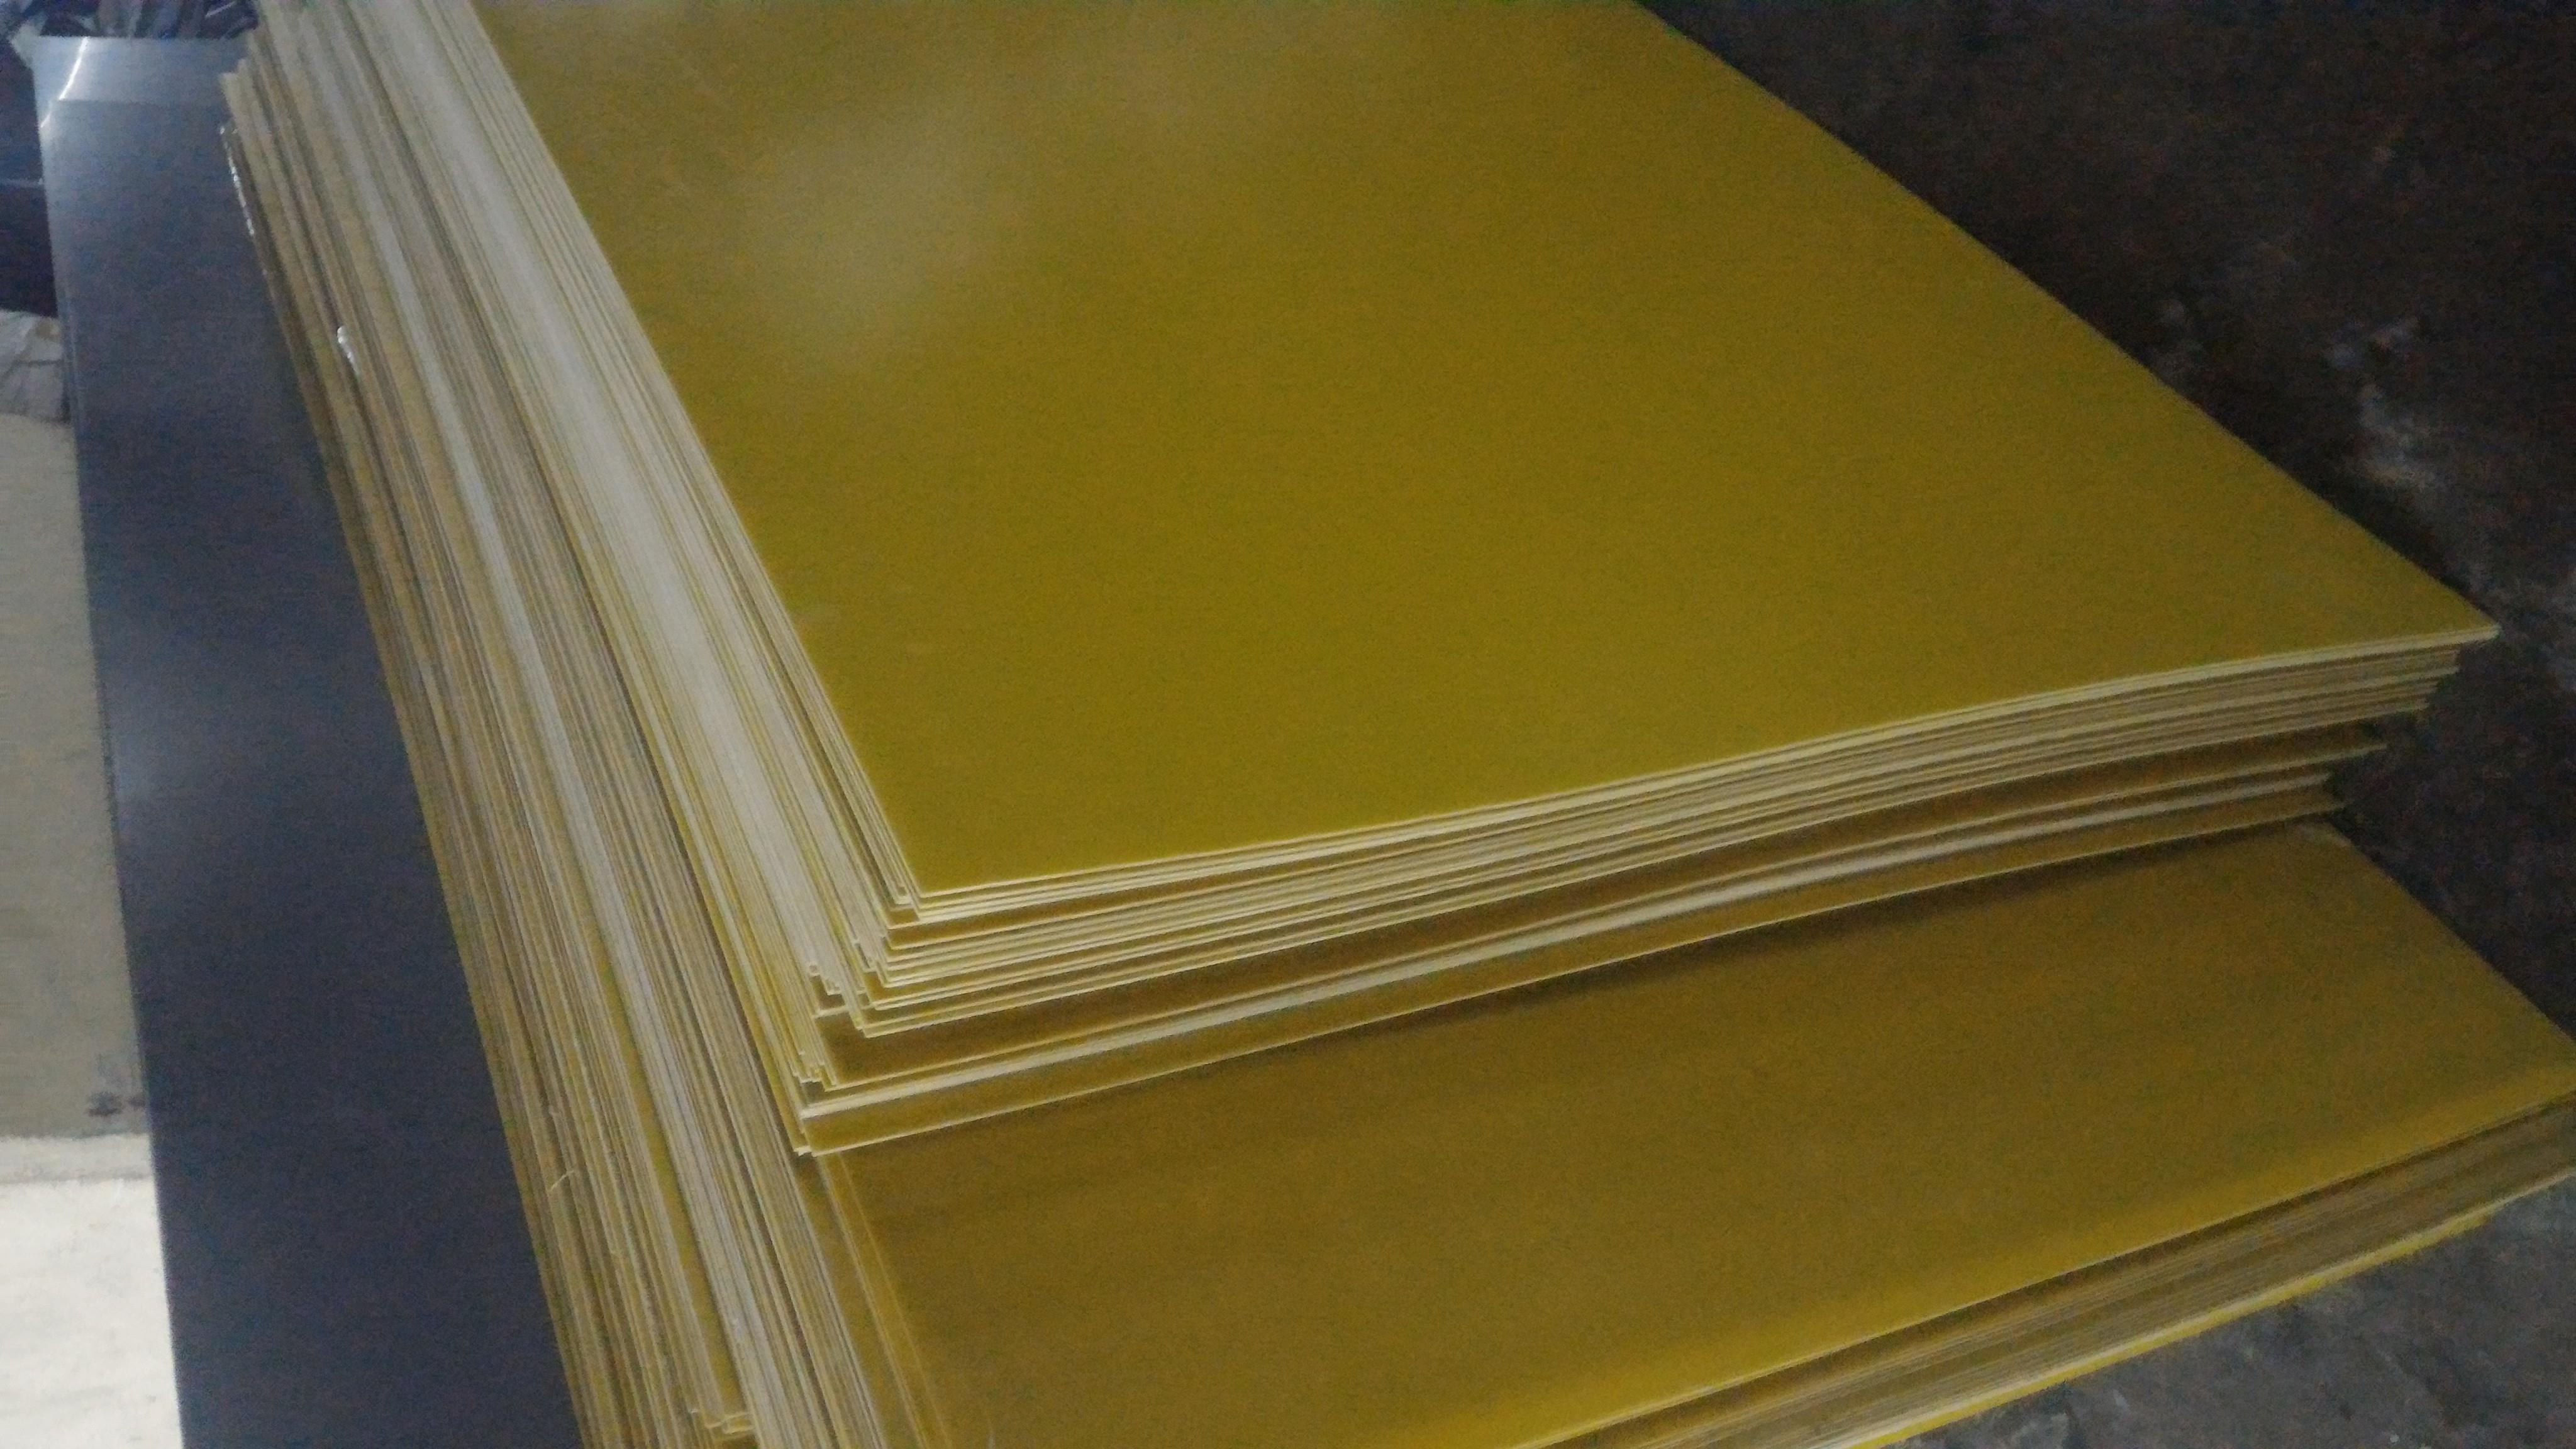 Sell Epoxy Resin Sheet G11 From Indonesia By Eka Jaya